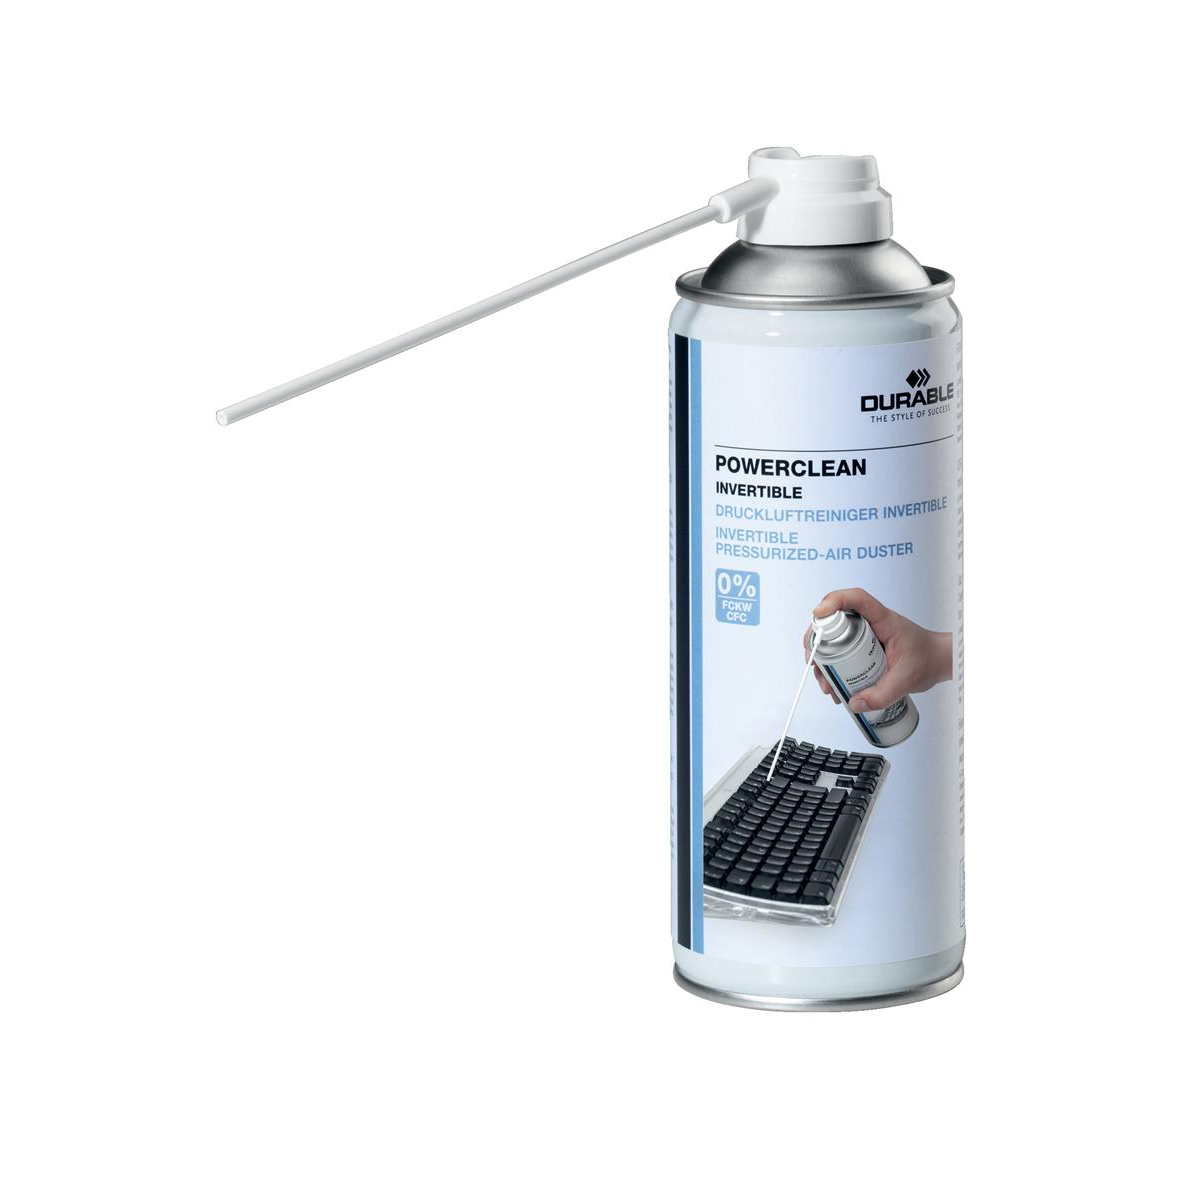 Keyboard Durable Powerclean Air Duster Gas Cleaner Flammable Inverted 200ml Ref 5797